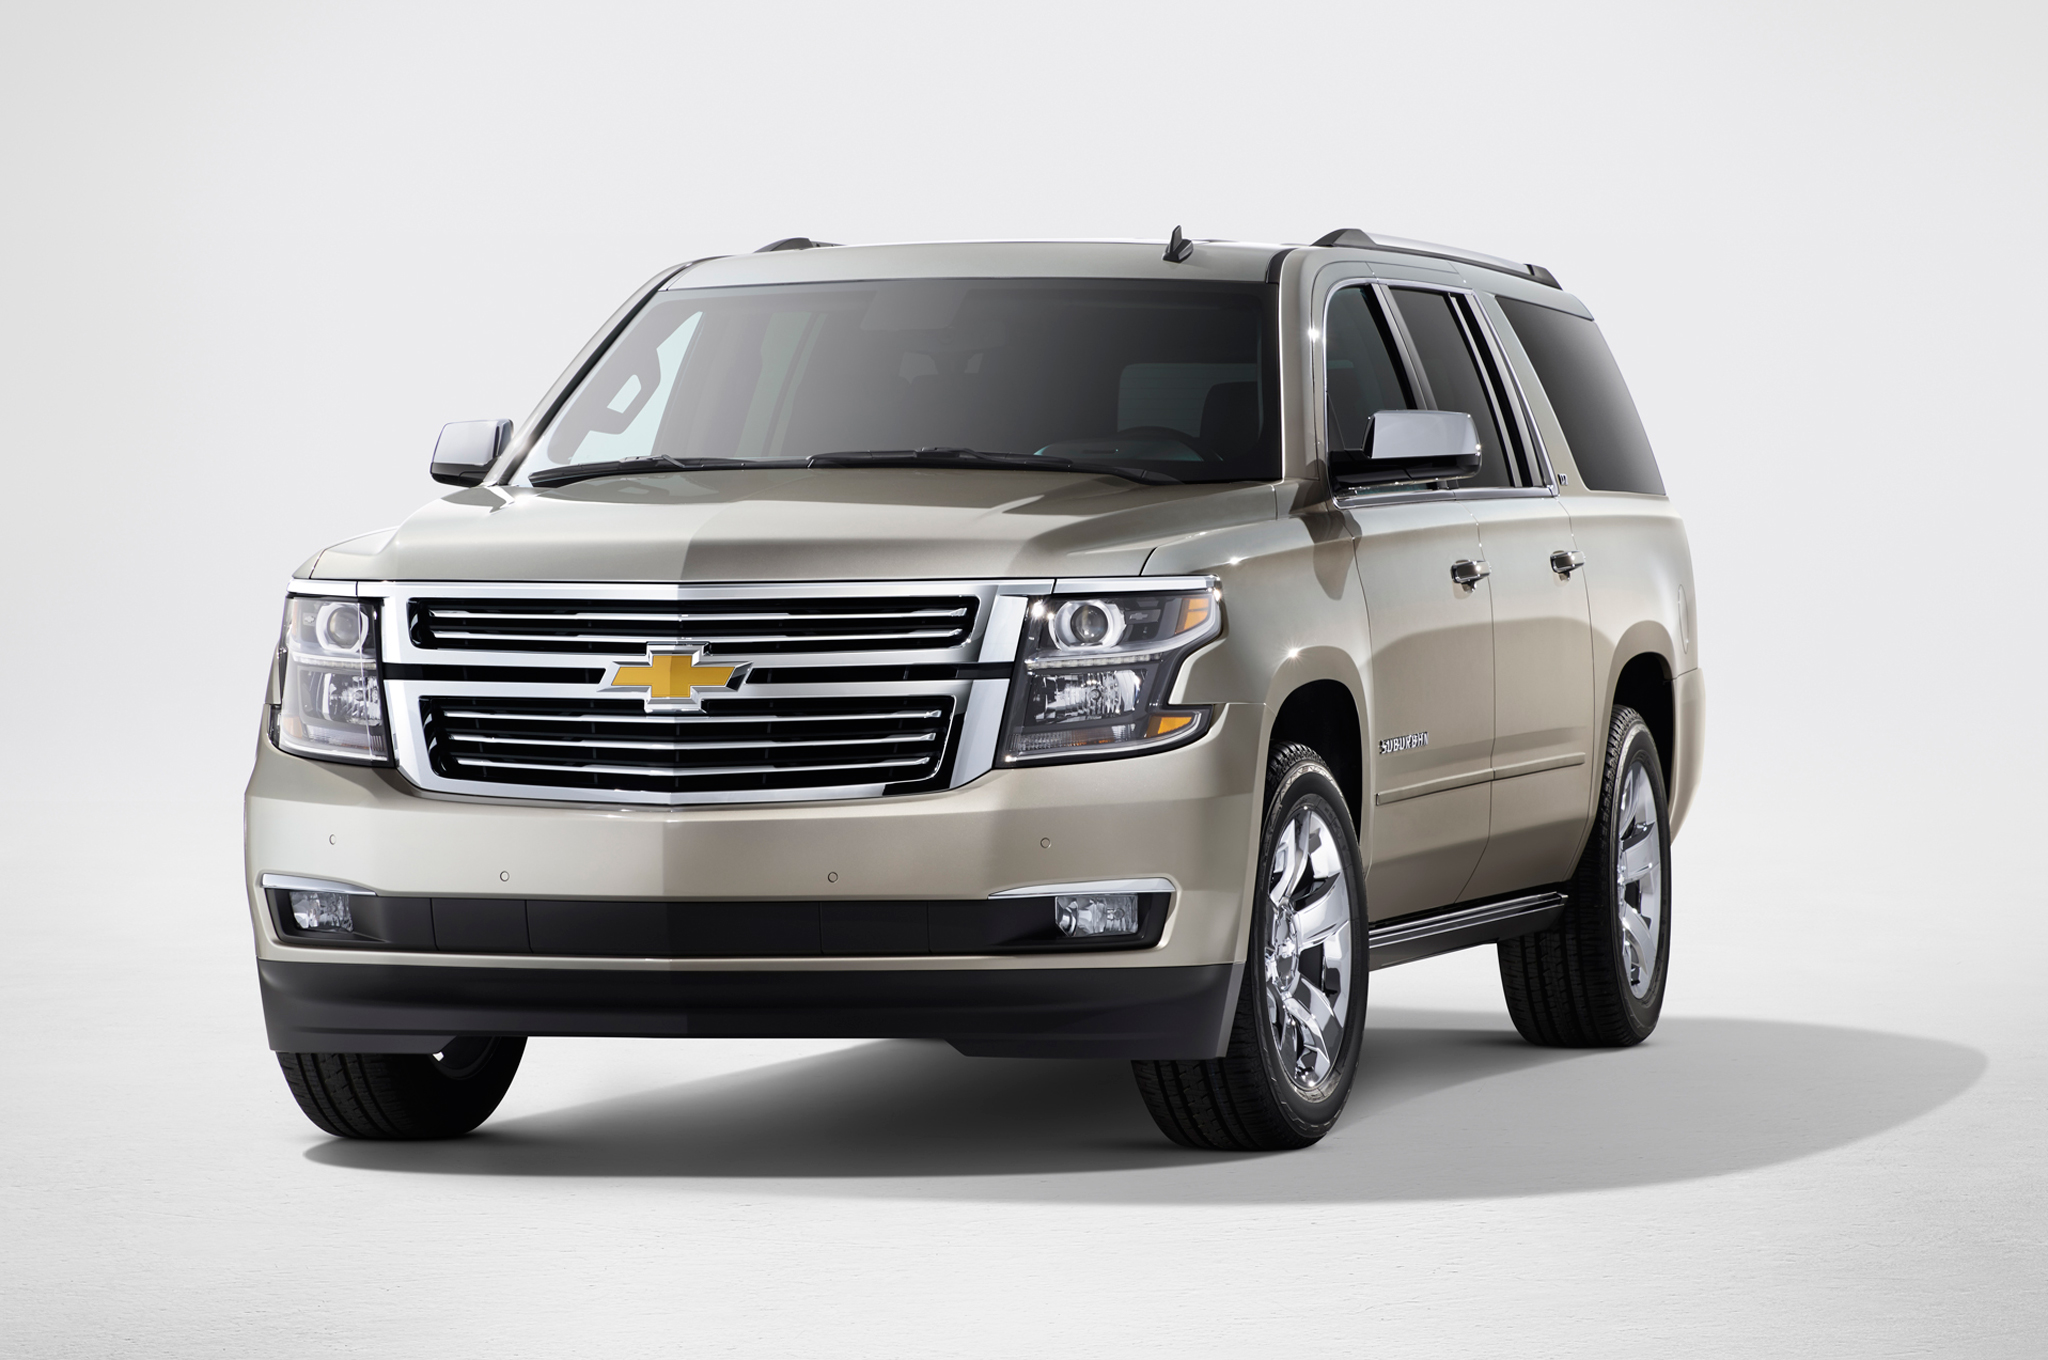 2015 Chevrolet Suburban Exterior (Photo 29 of 33)